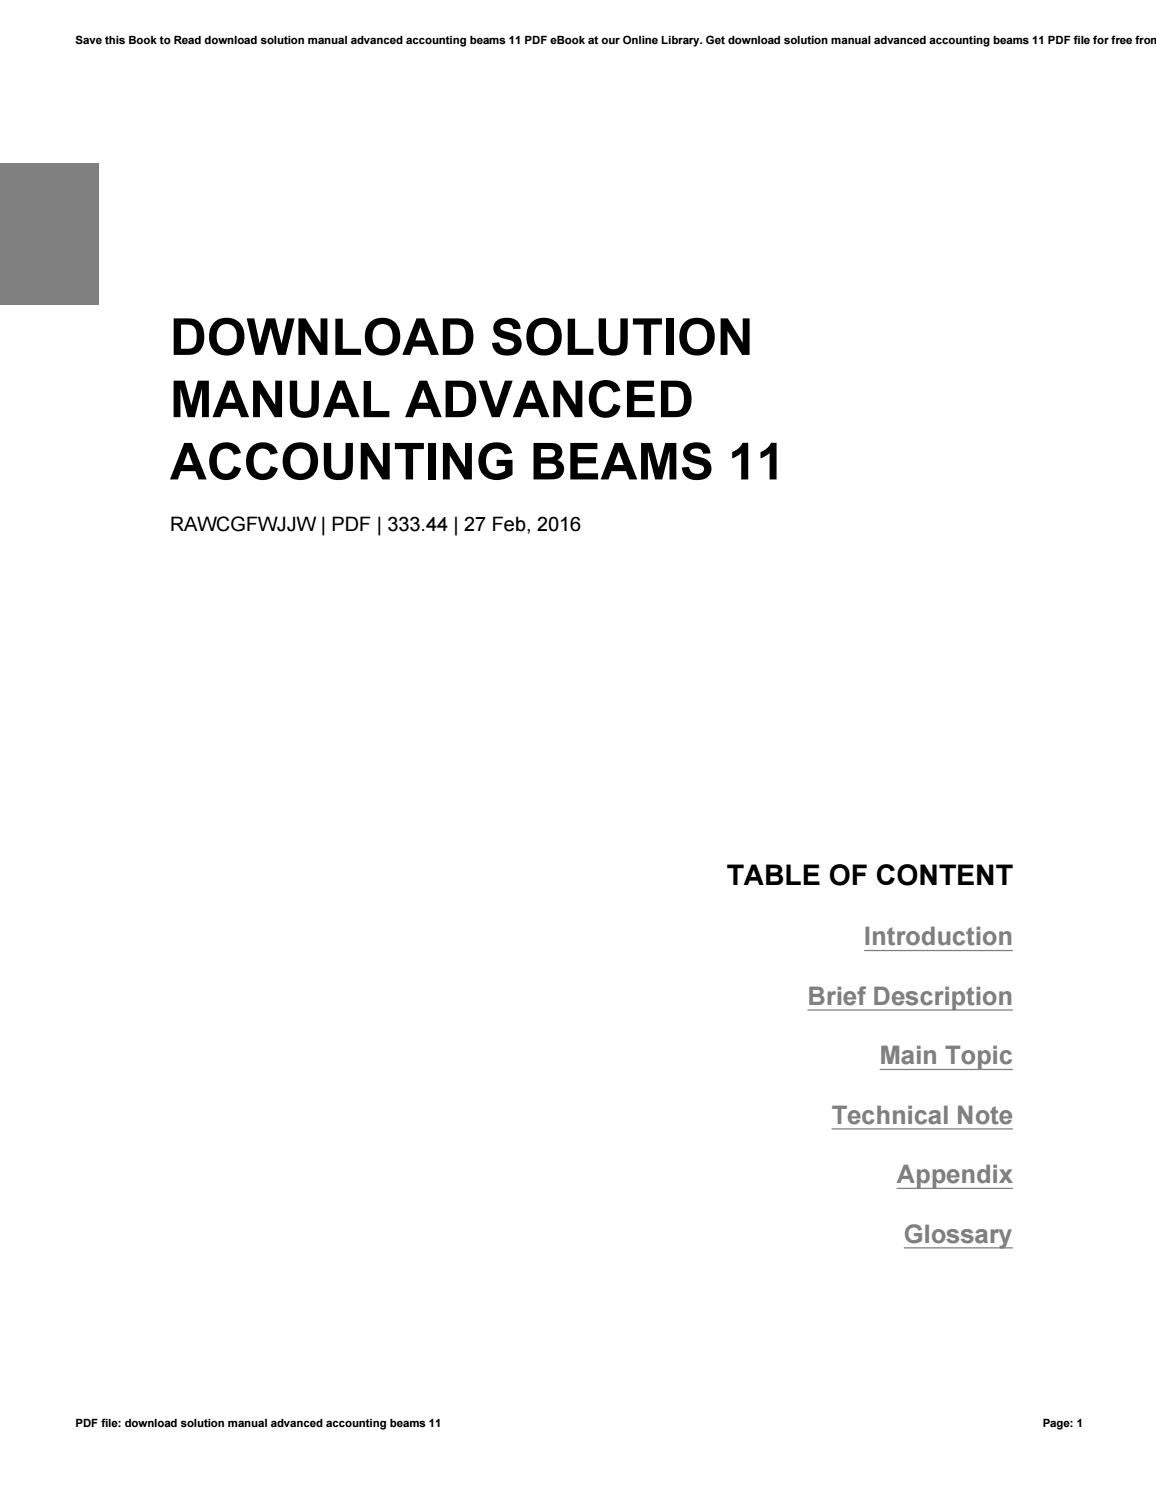 Download solution manual advanced accounting beams 11 by Ethel Burnette -  issuu